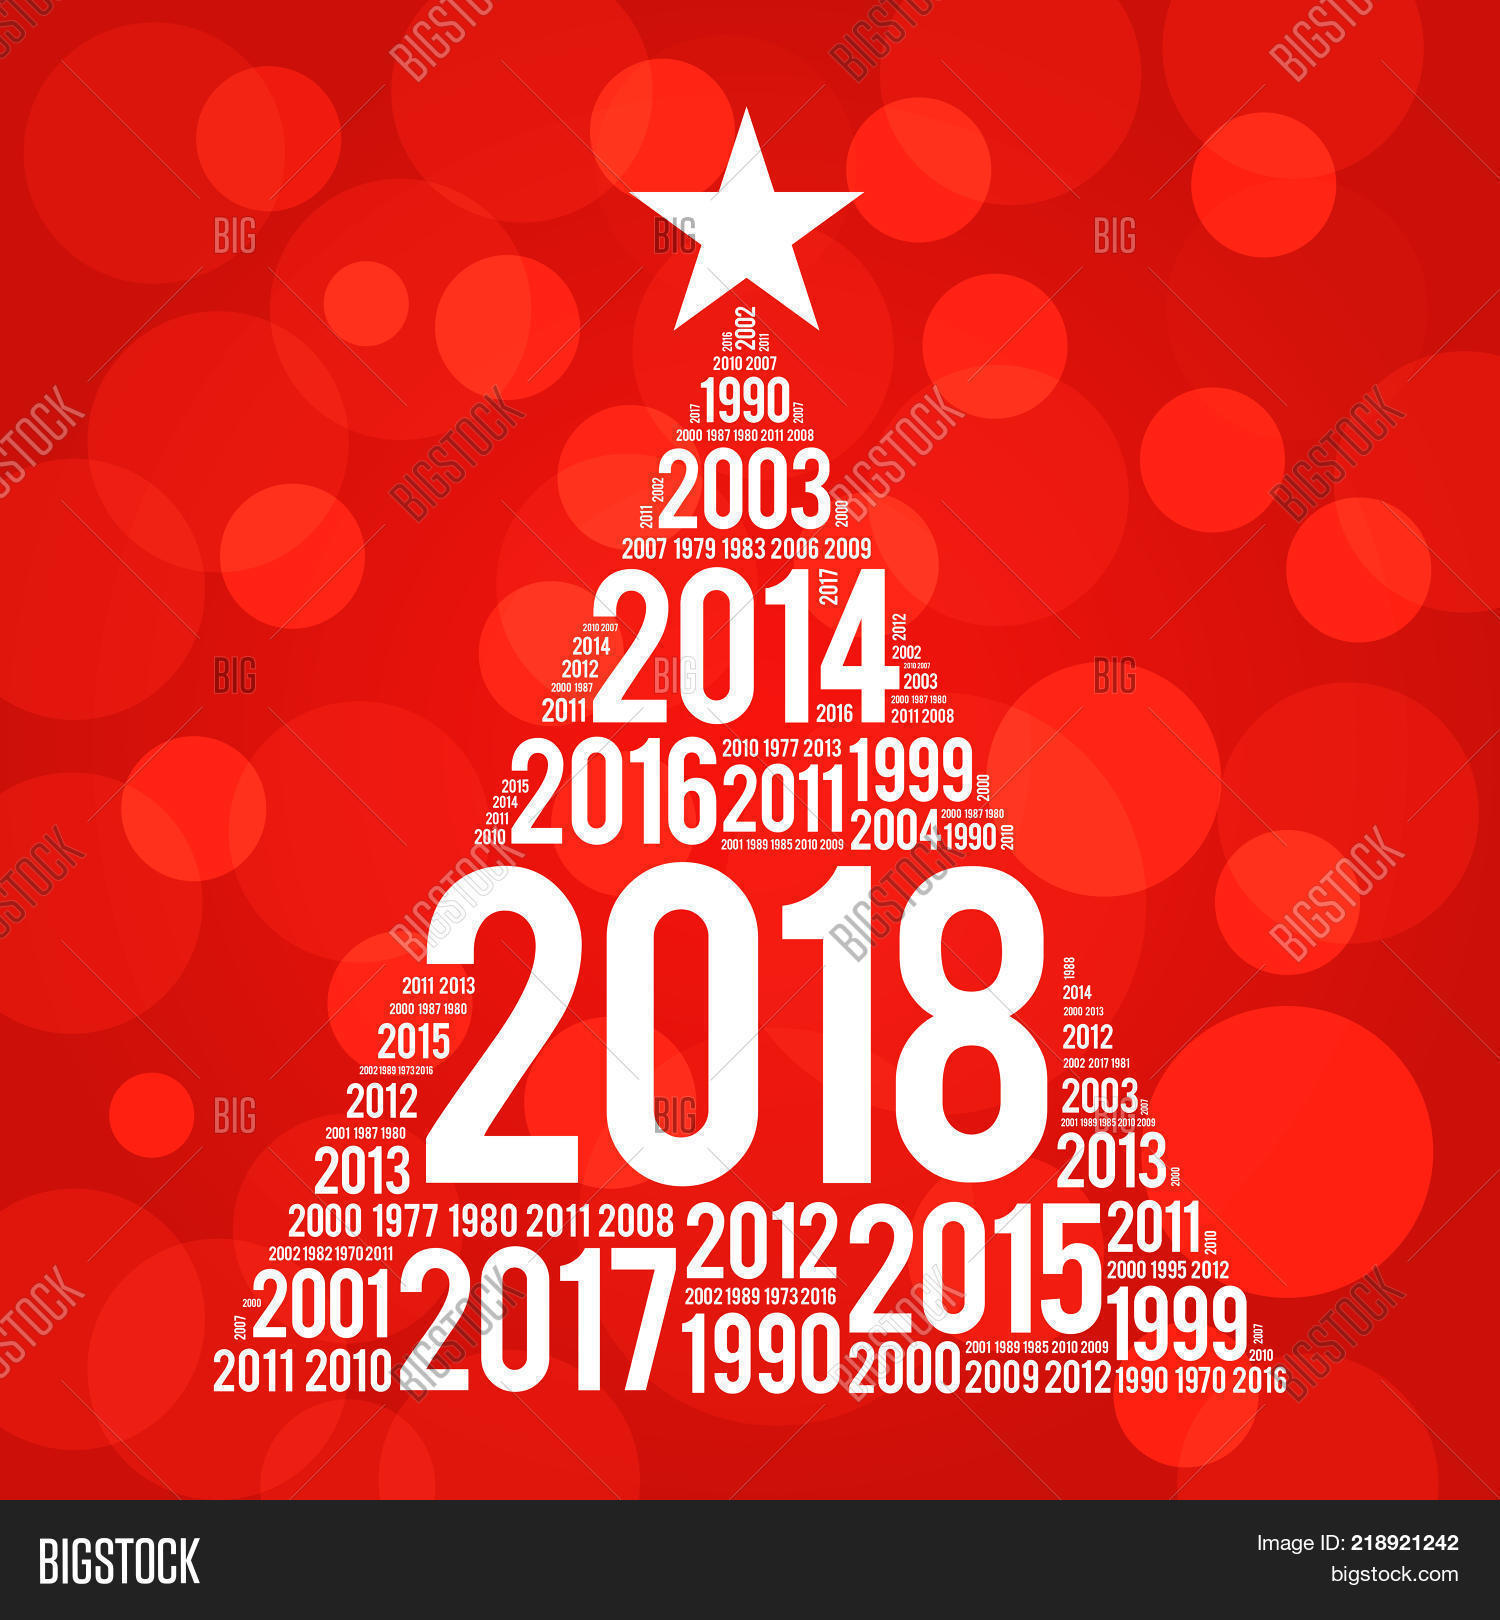 2018 Happy New Year Image Photo Free Trial Bigstock